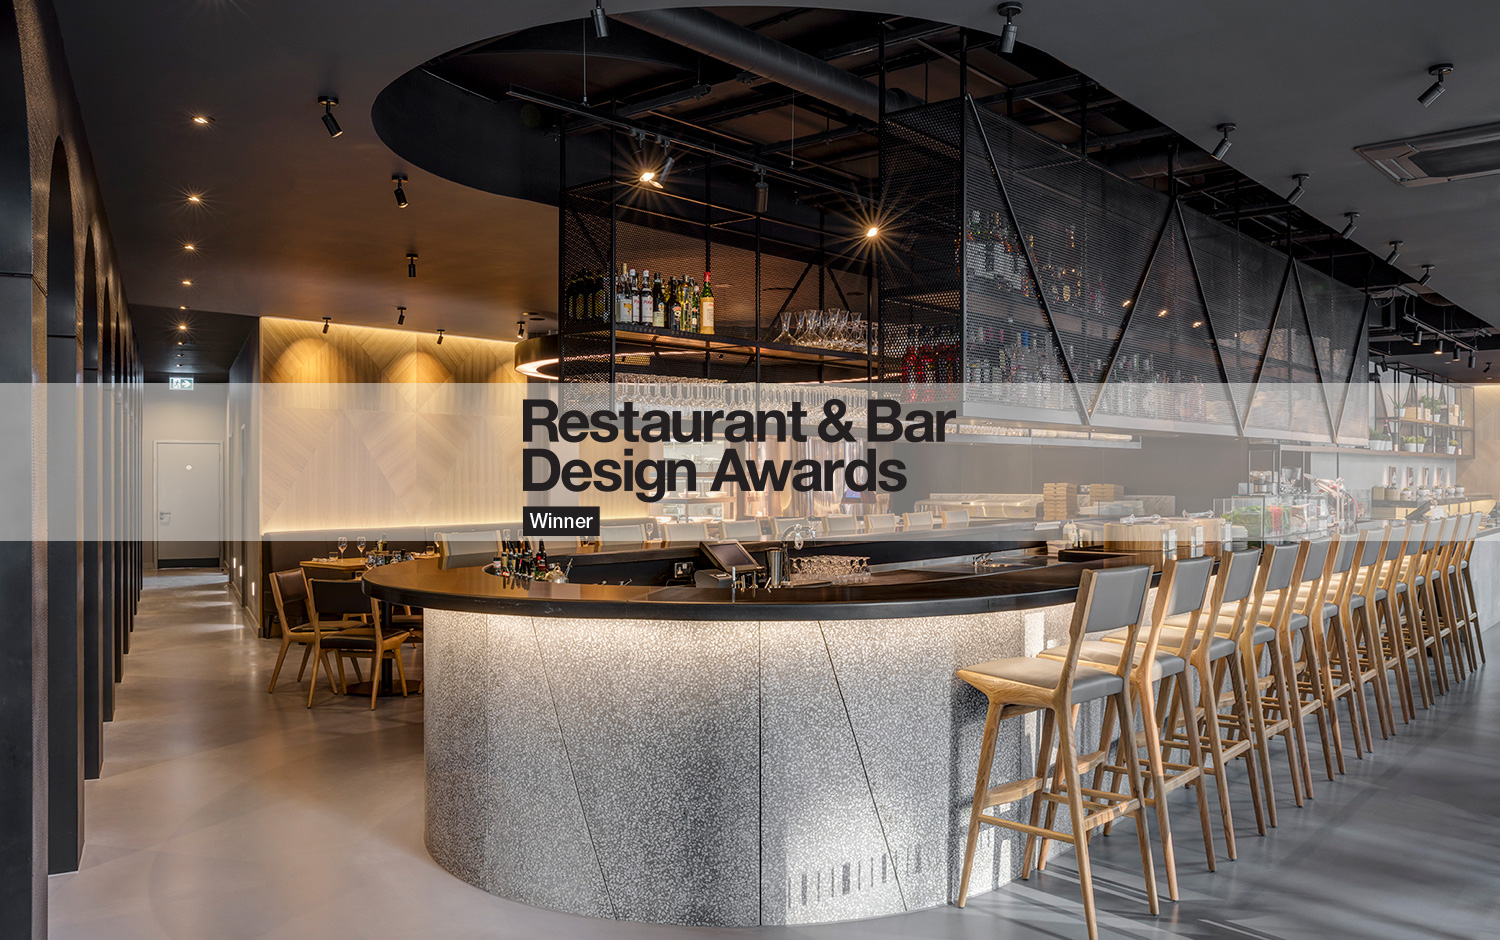 Restaurant and bar design award obic mozzarella bar for Restaurant layout and design